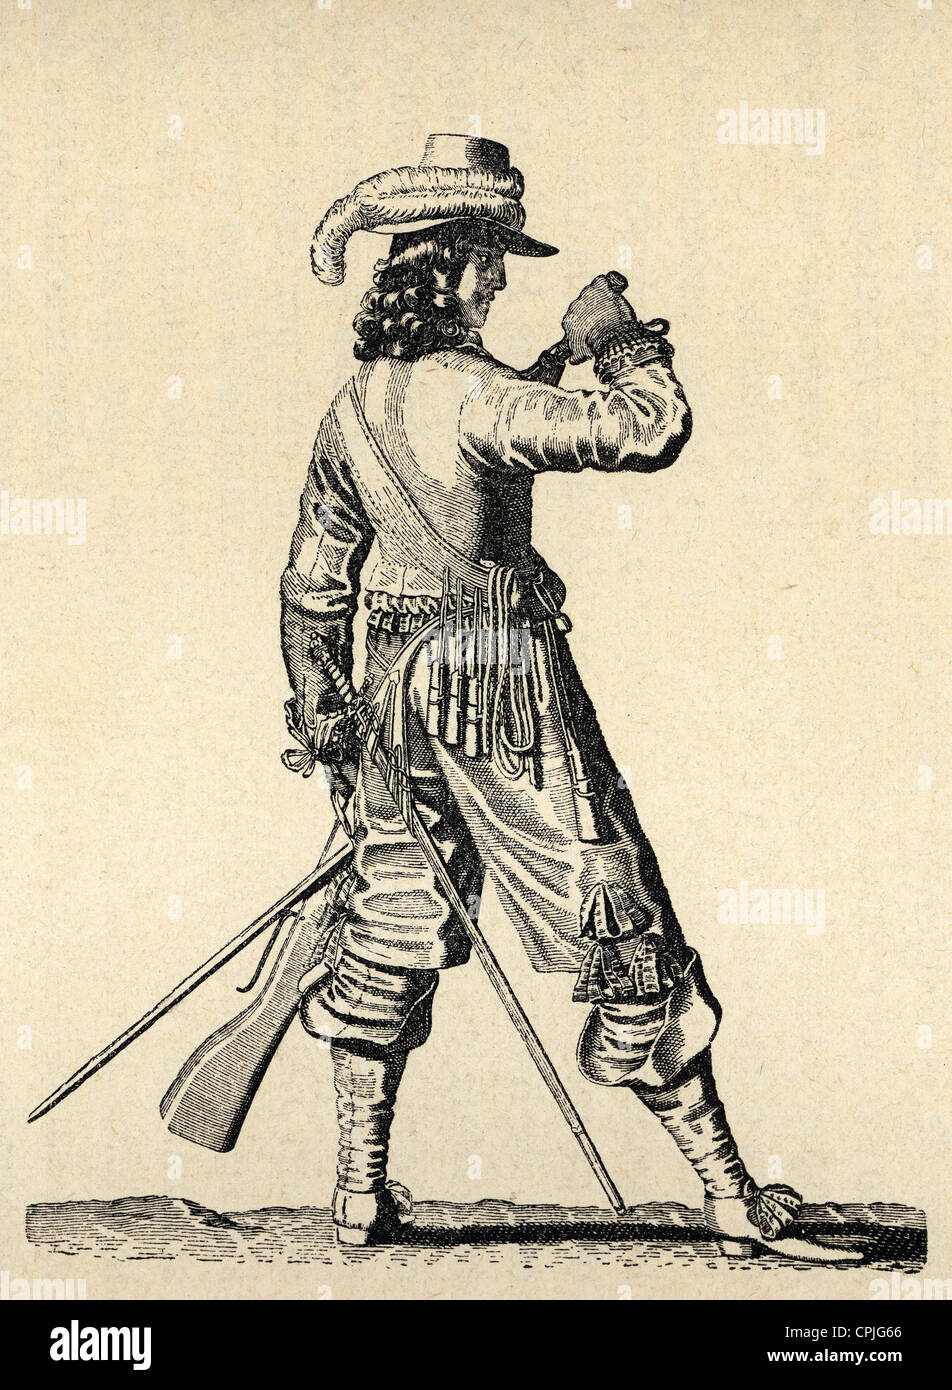 Army of the 18th century. France. Musketeer of the Infantry of Louis XIV charging the musket. Engraving. - Stock Image